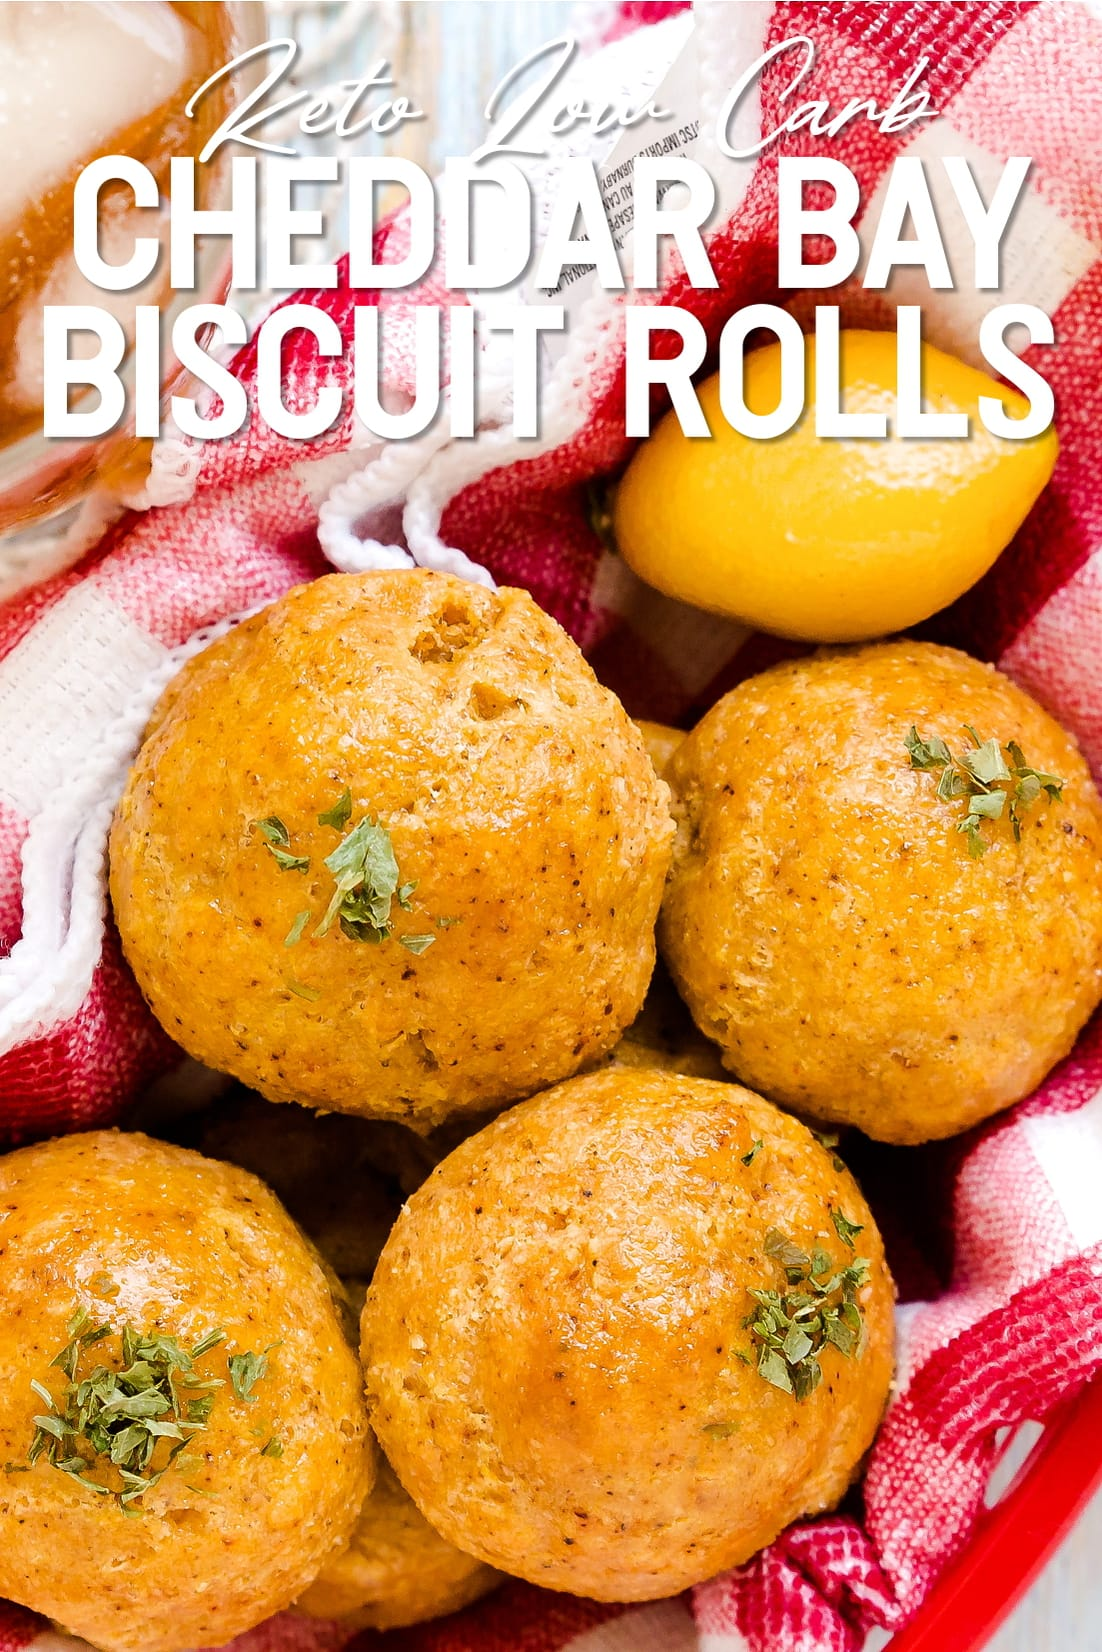 Cheddar Bay Biscuit Rolls Top Down